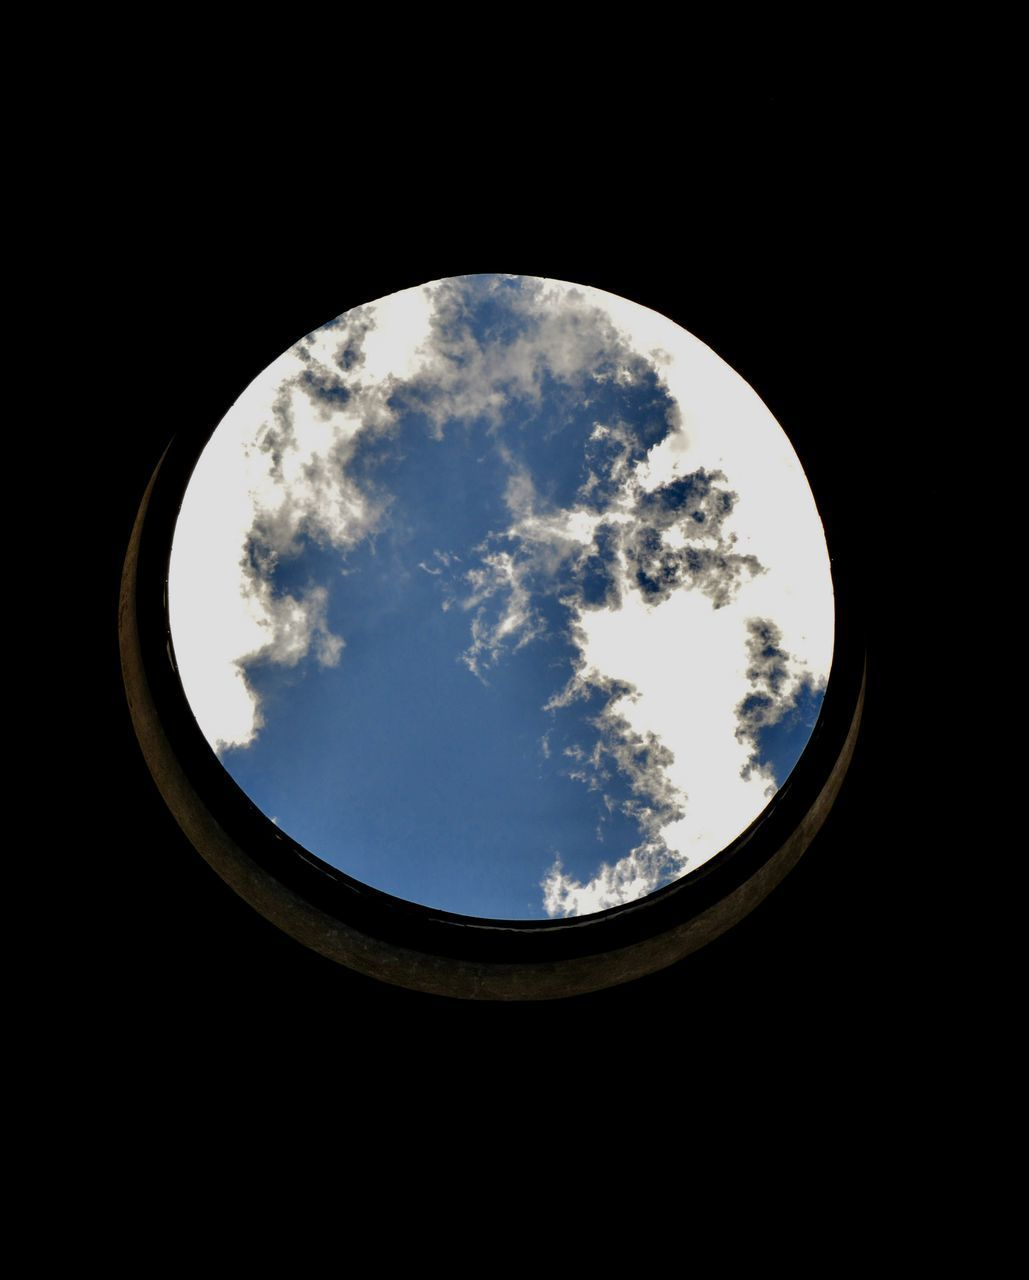 LOW ANGLE VIEW OF SKY SEEN THROUGH SILHOUETTE OF ARCH